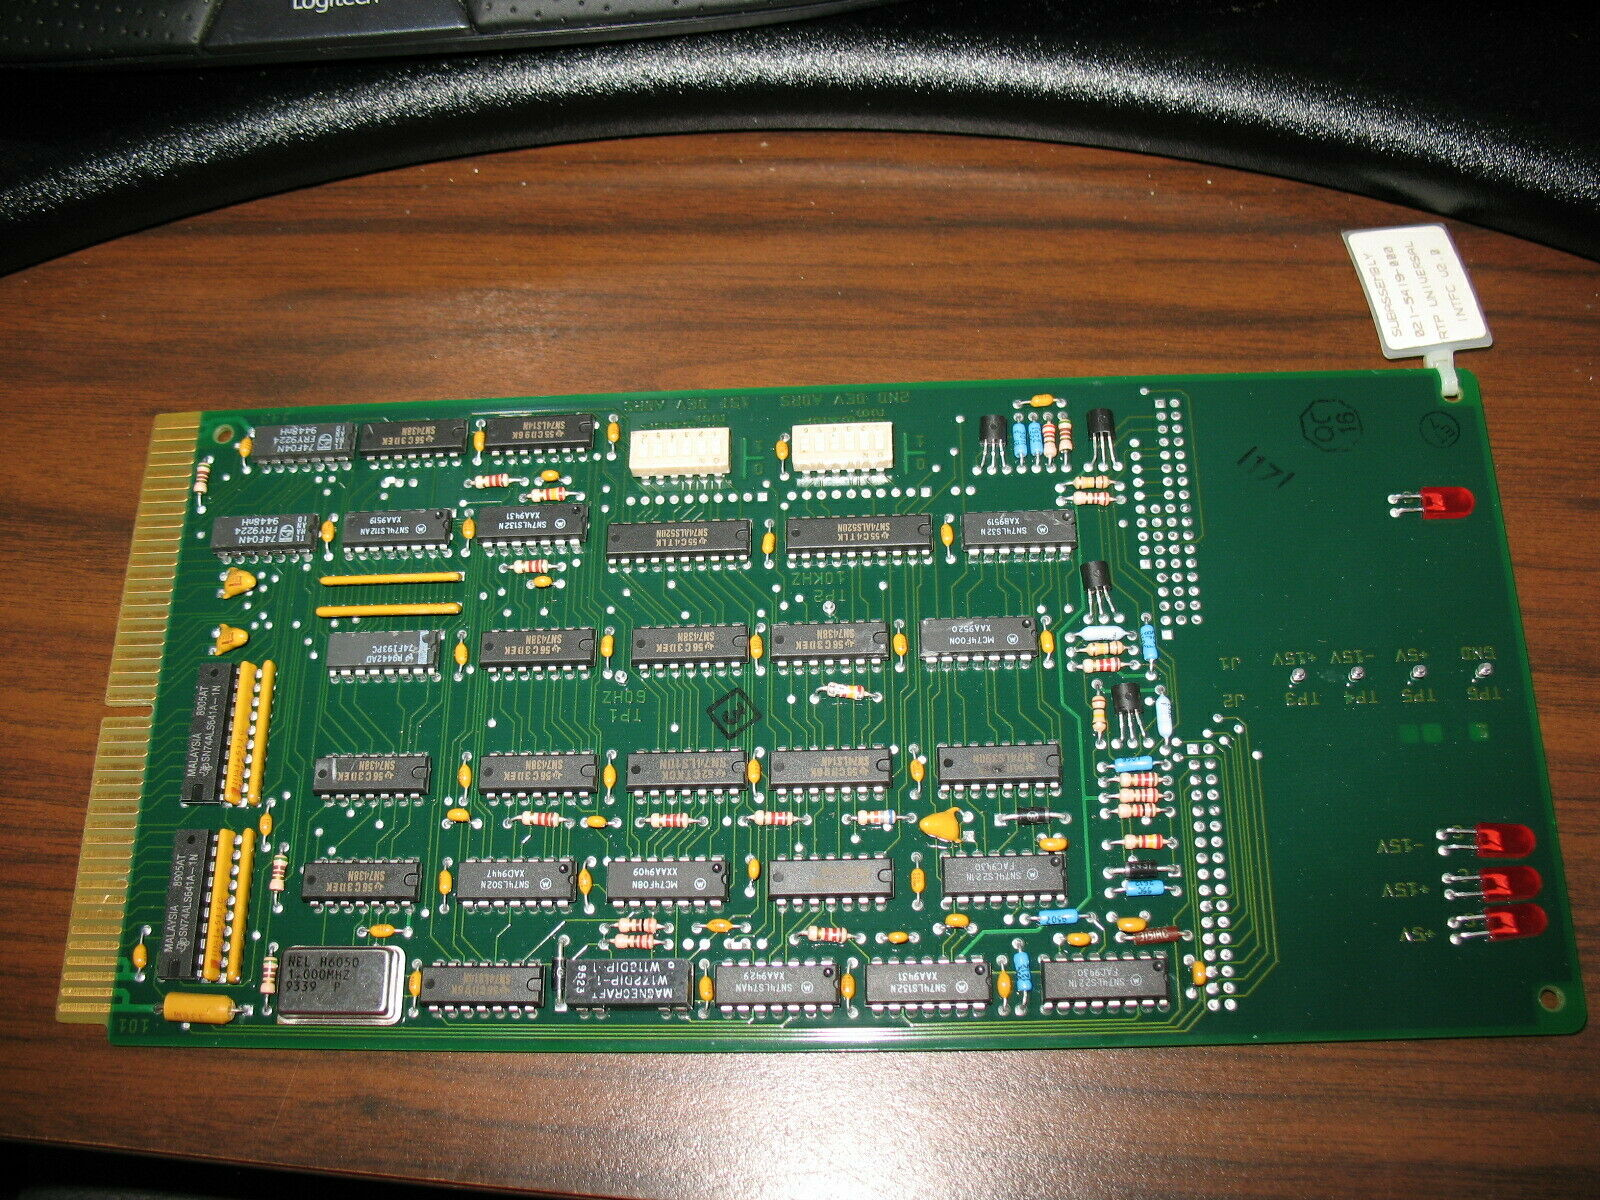 Computer Products 021-5419-000 Sub Assembly RTP Universal - Repaired